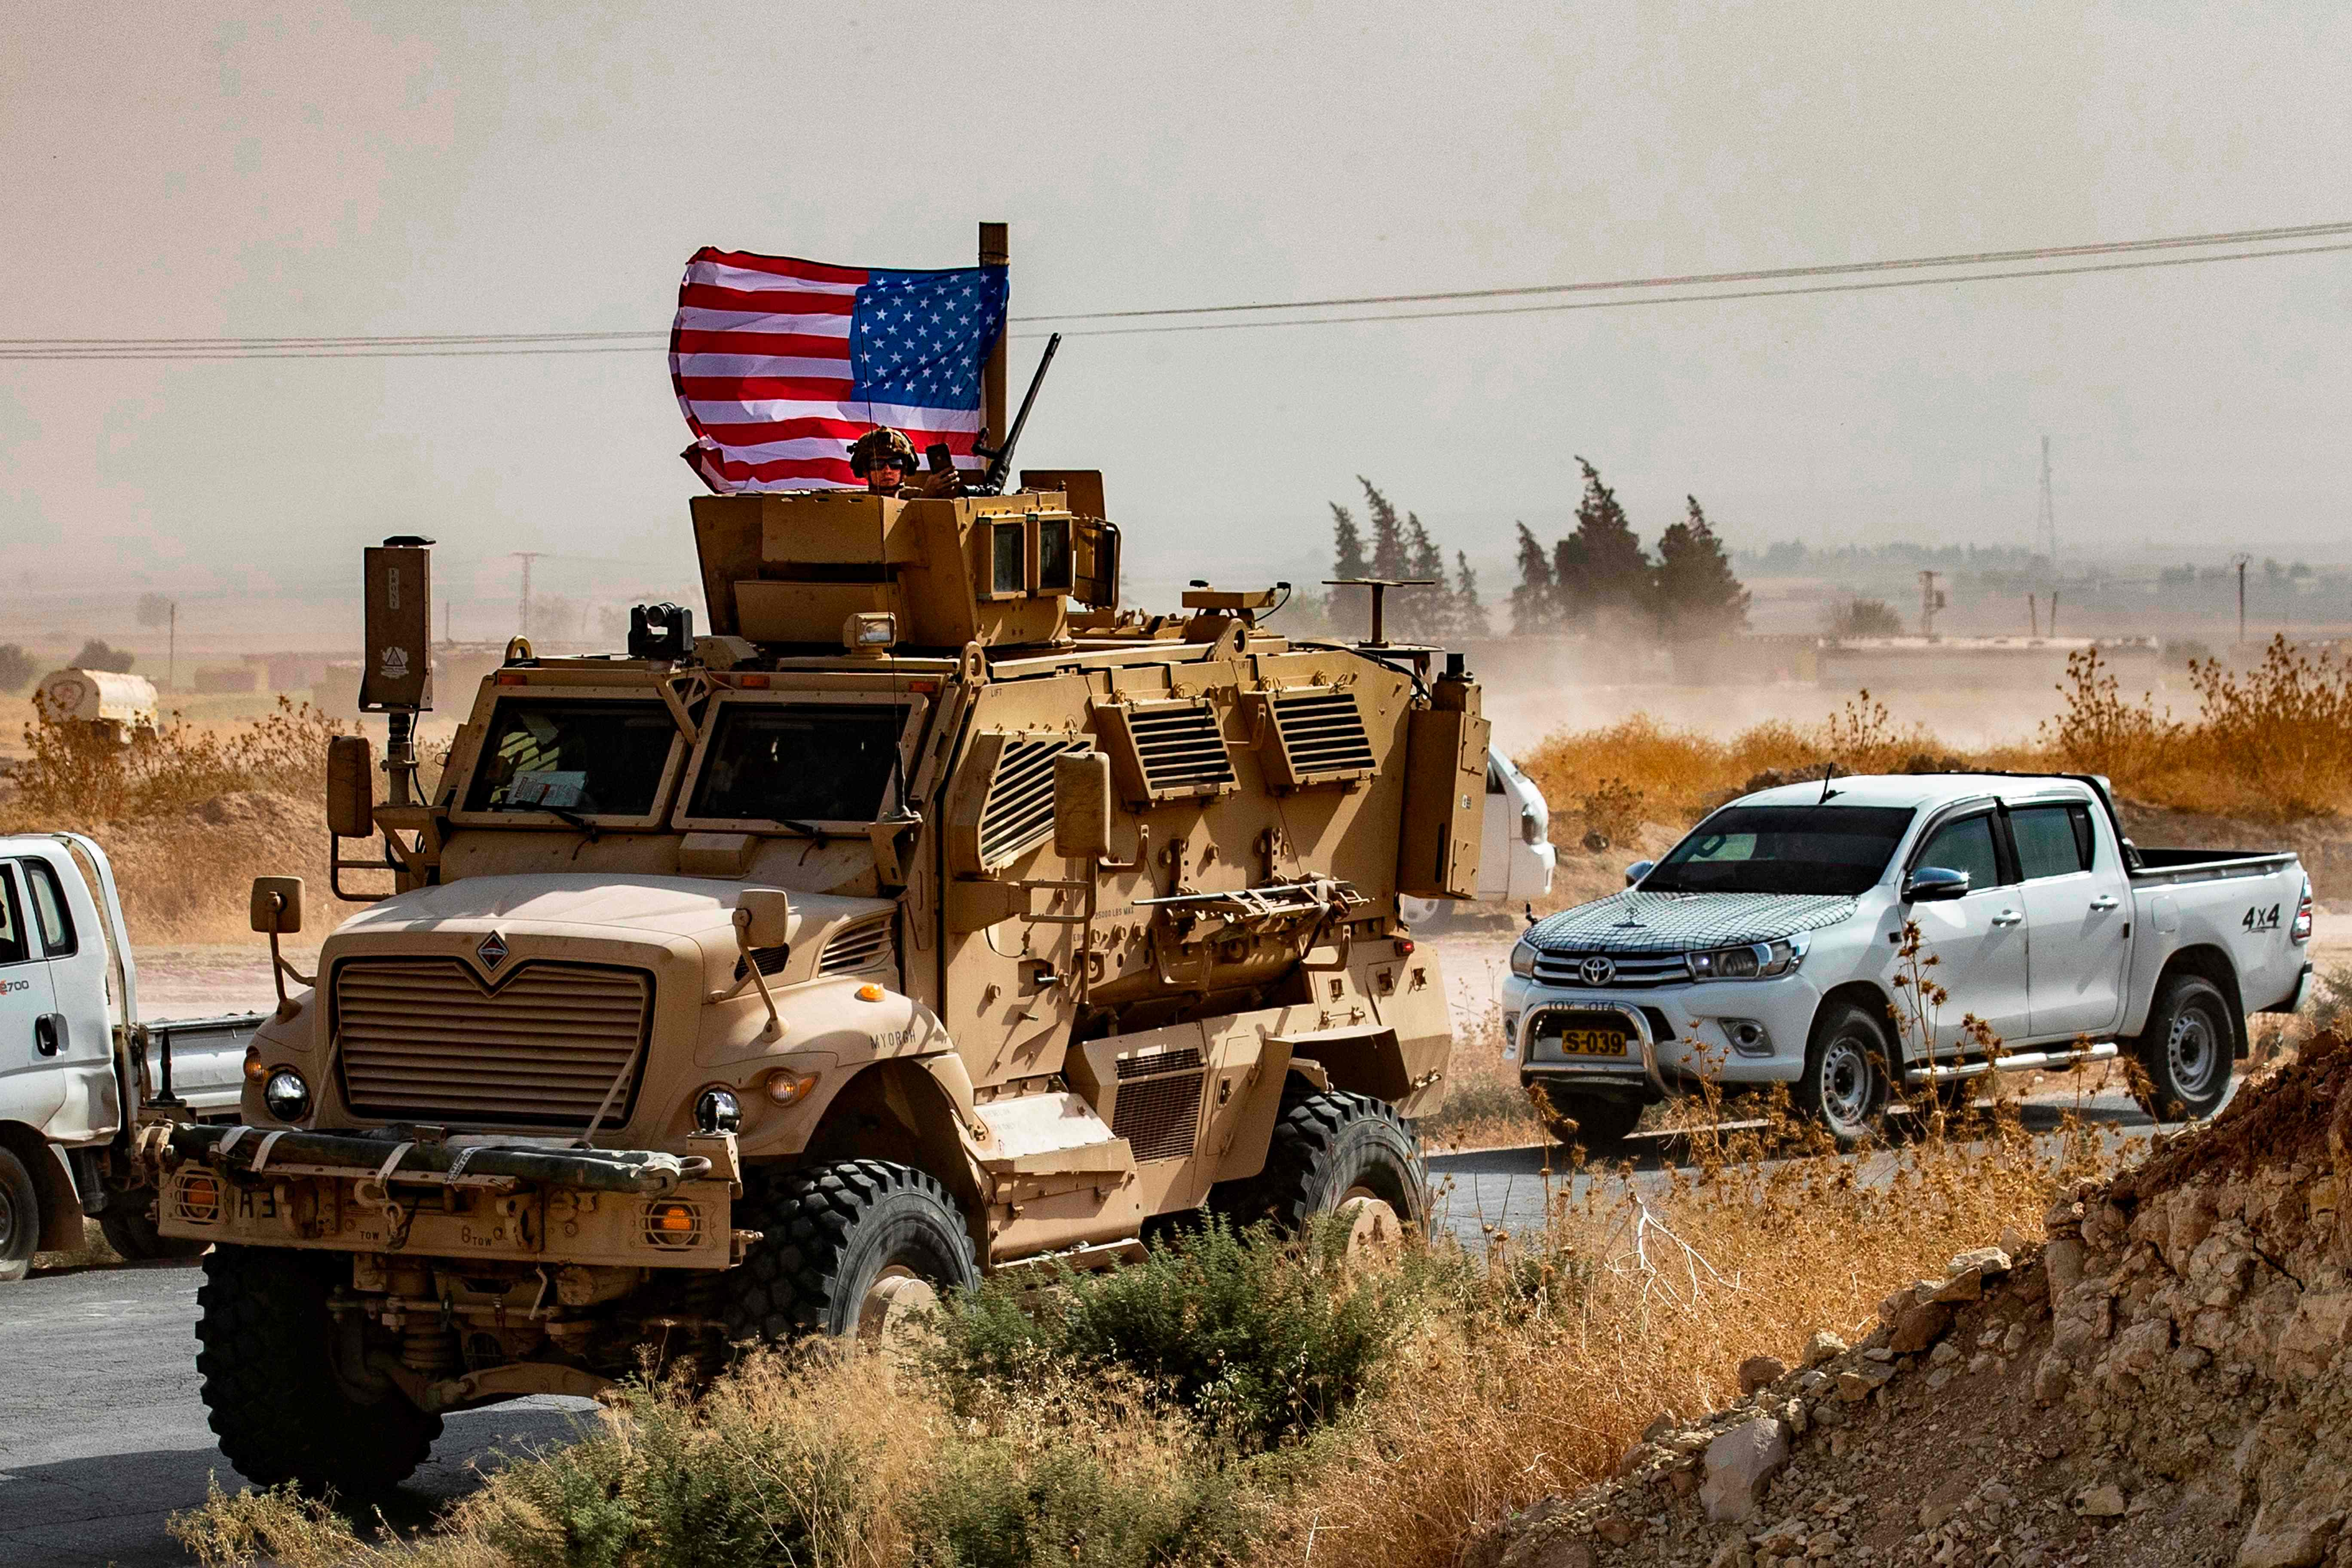 US troops have now been ordered to pull out of the region